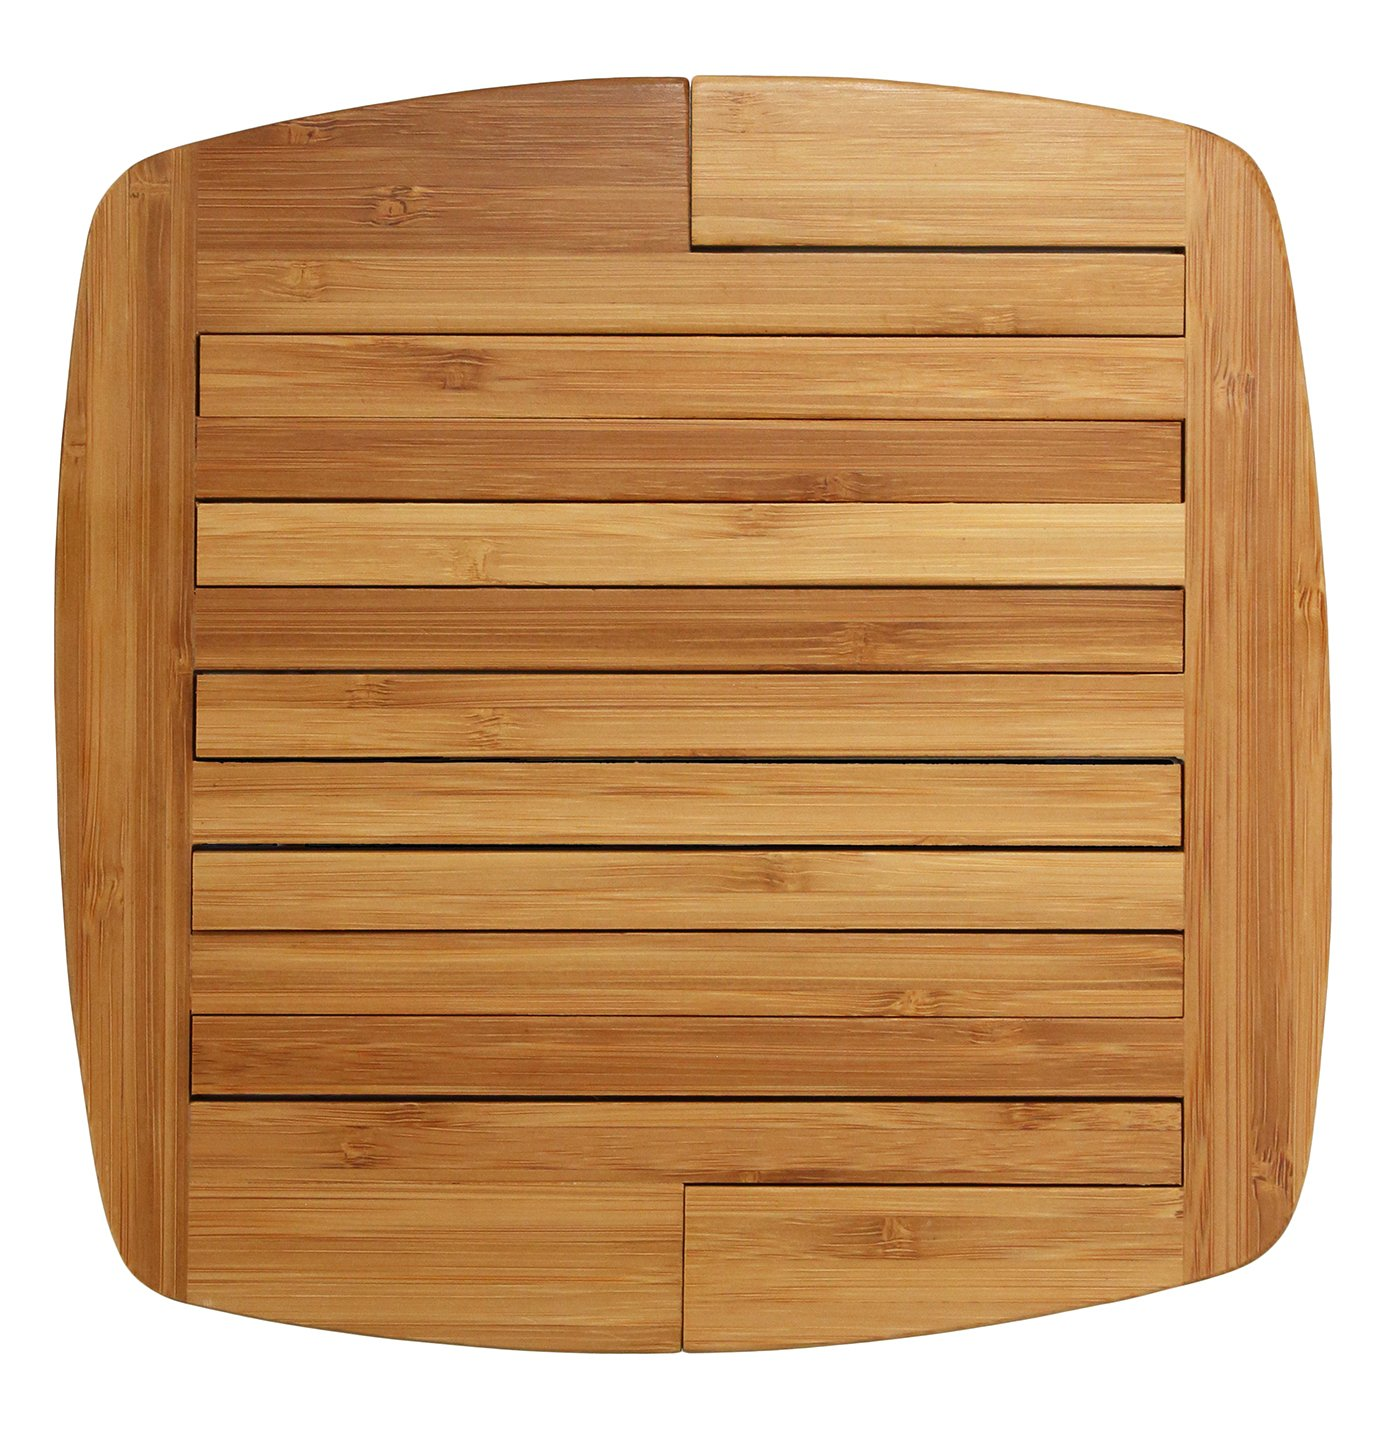 Totally Bamboo Expandable Trivet; Heat Resistant, Durable and Beautiful Round Wood Trivet Helps Protect Tabletops & Counters in Style, 11 3/4'' by 8 3/4'' open, 8 3/4'' by 8 3/4'' closed; Designed in USA by Totally Bamboo